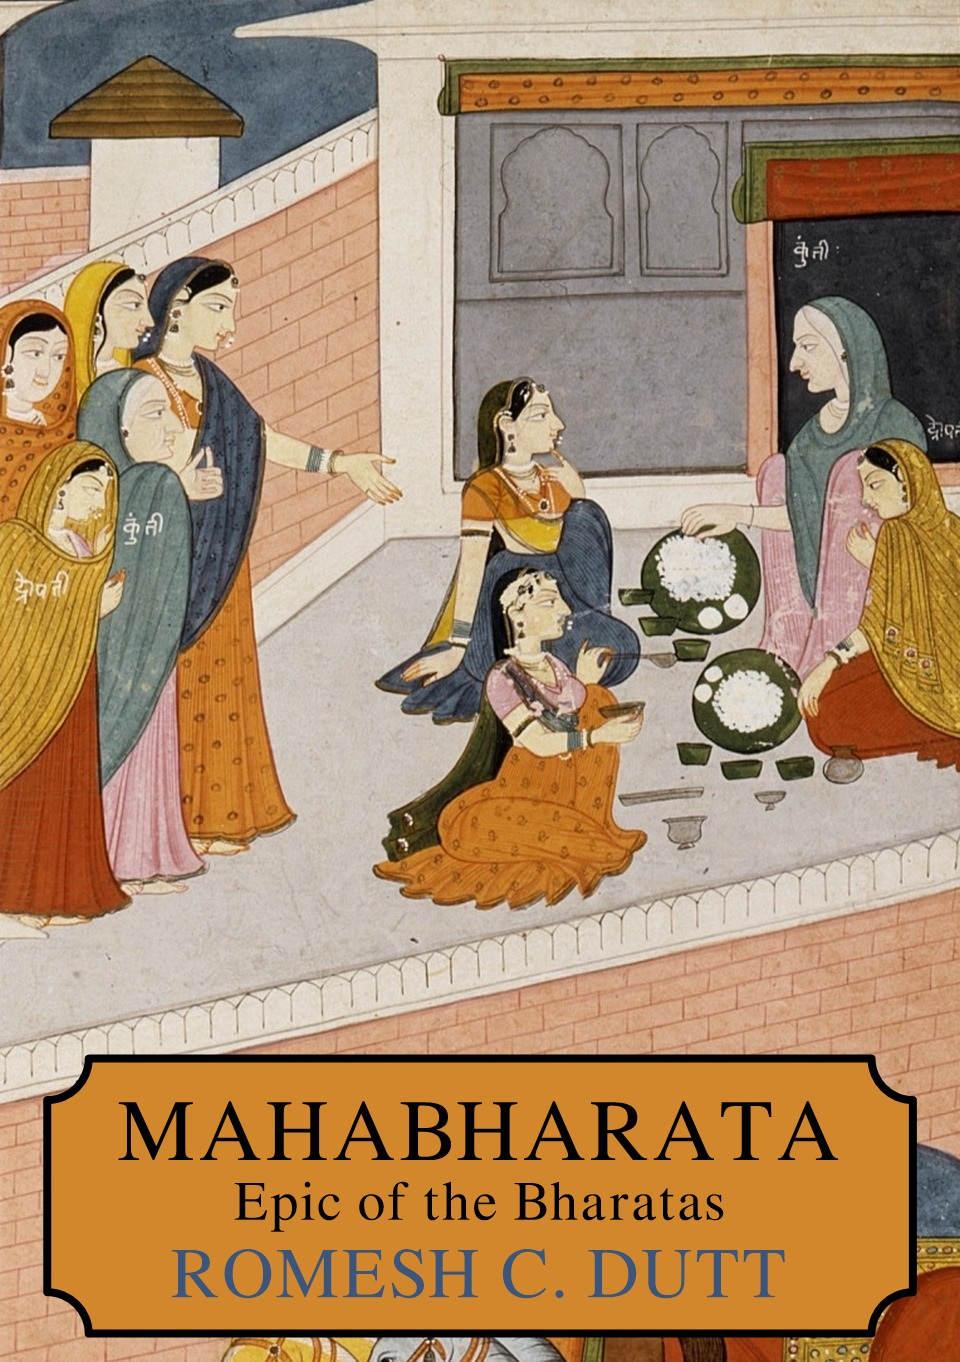 Link to Mahabharata, Epic of the Bharatas